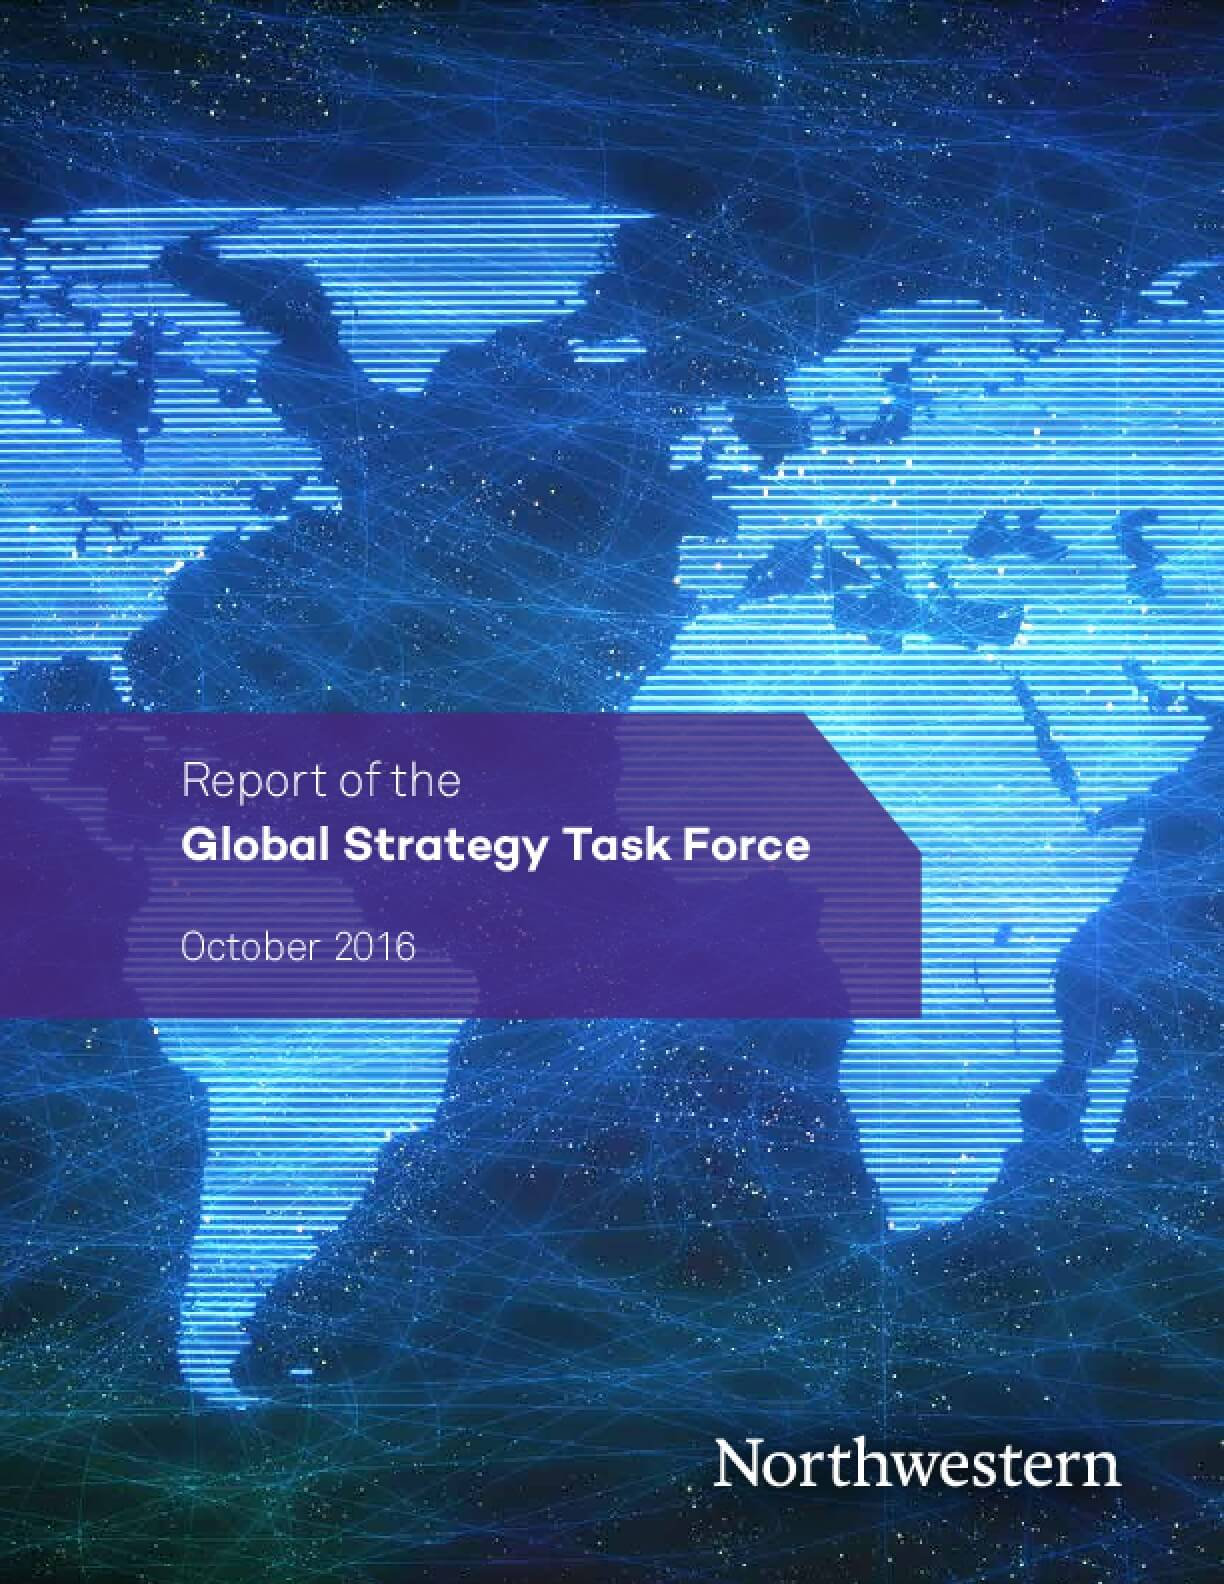 Report of the Global Strategy Task Force